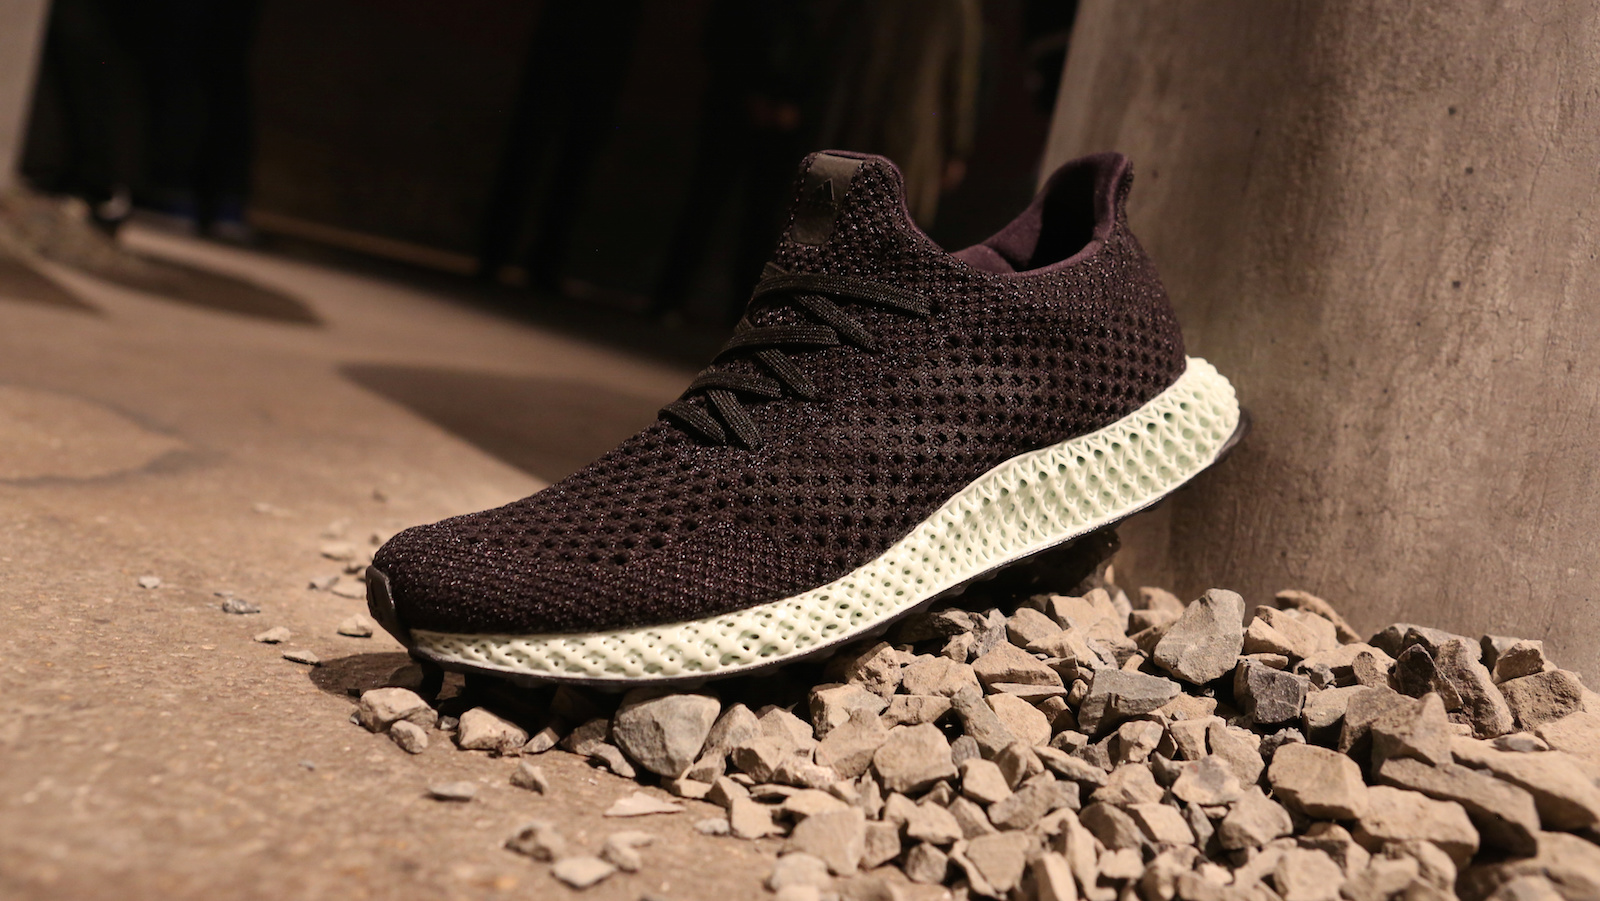 7e466d1bace5 Adidas is kicking off the era of 3D-printed sneaker production with the  Futurecraft 4D